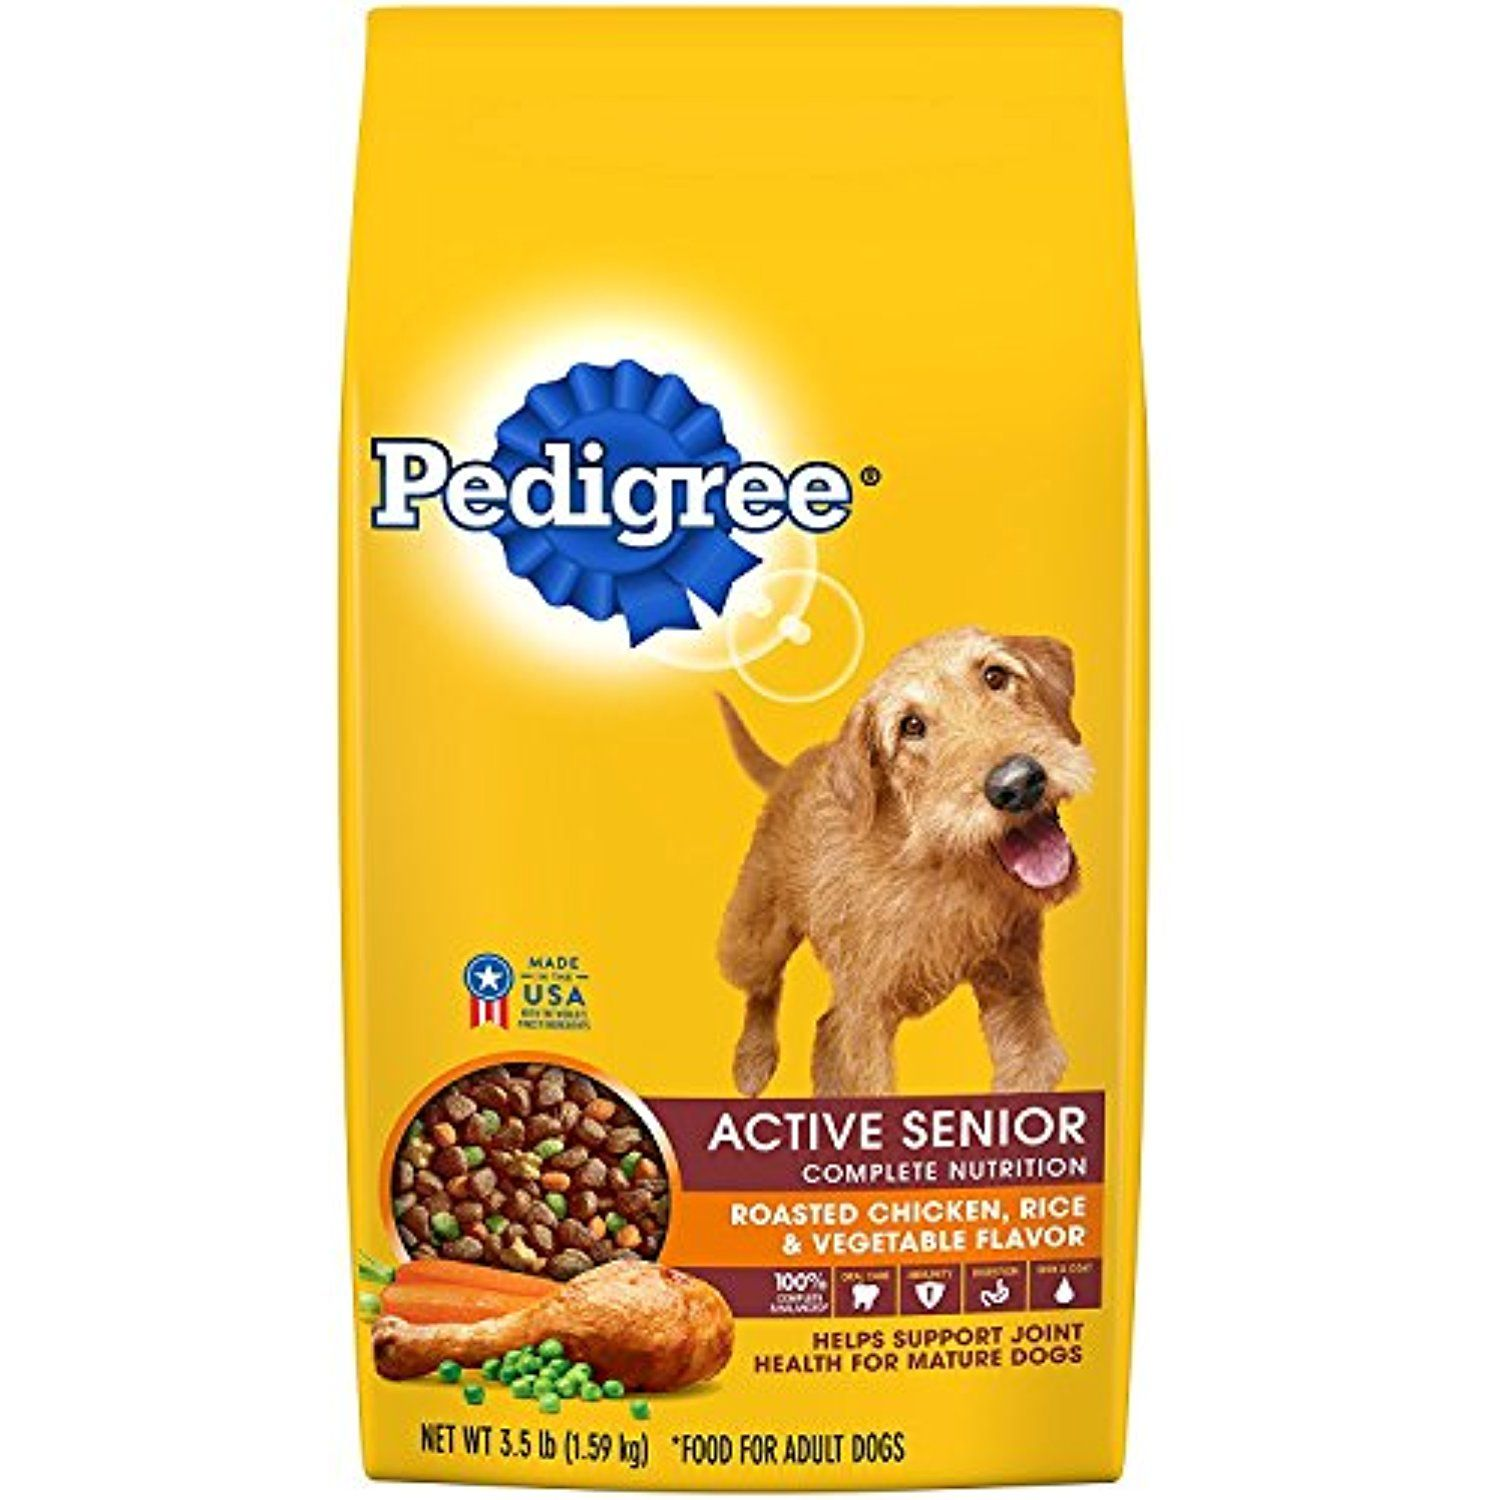 Pedigree Senior Dry Dog Food Chicken 3 5 Lbs Pack 2 Please